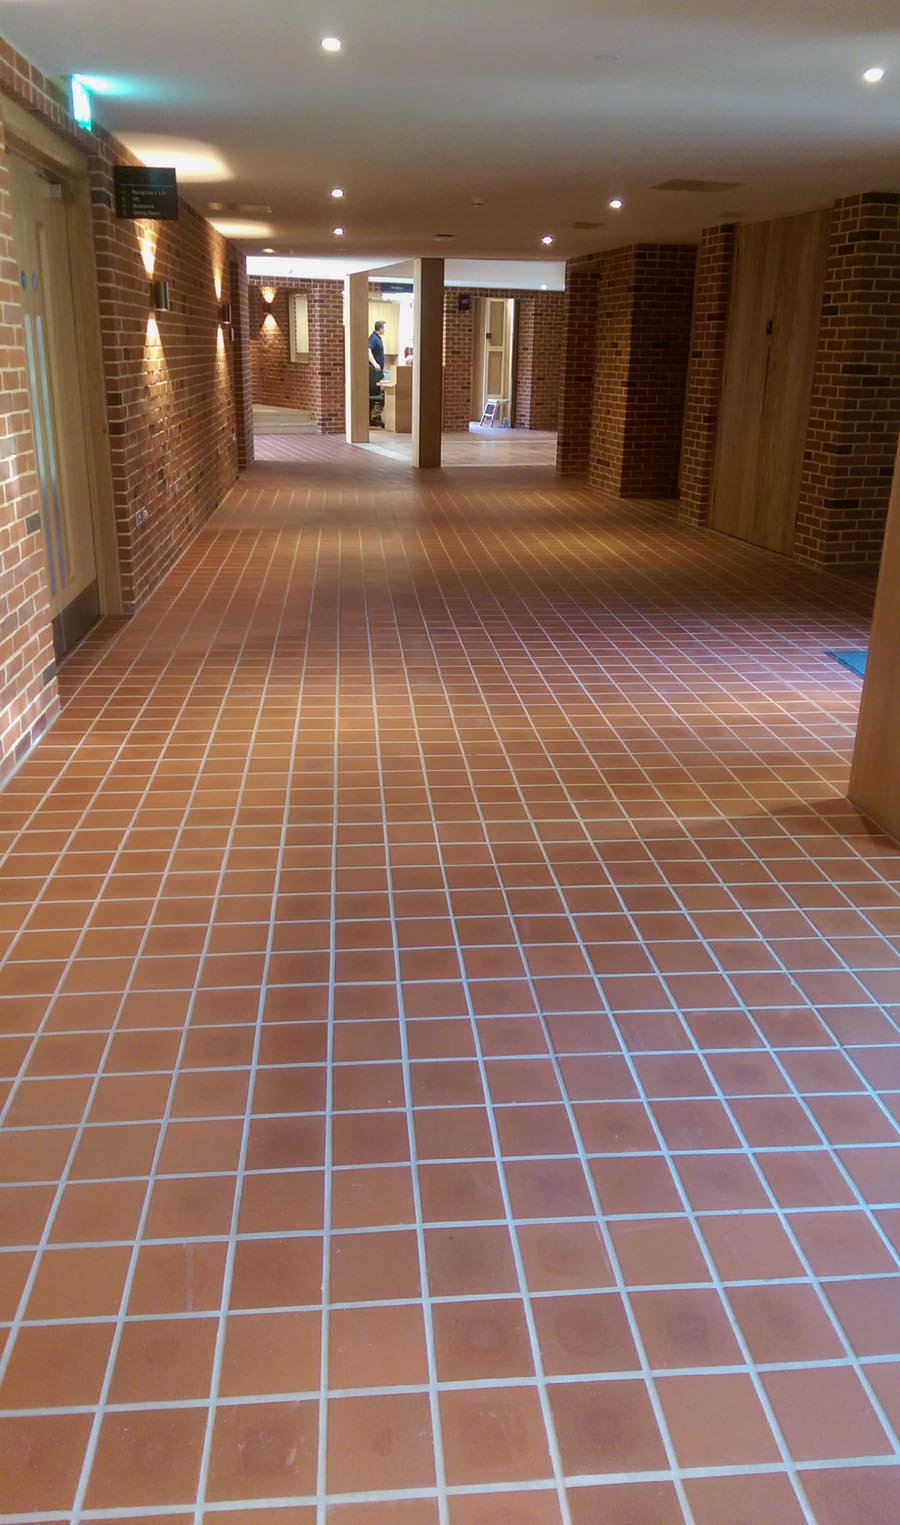 Staffs red quarry tiles at Jesus College Cambridge